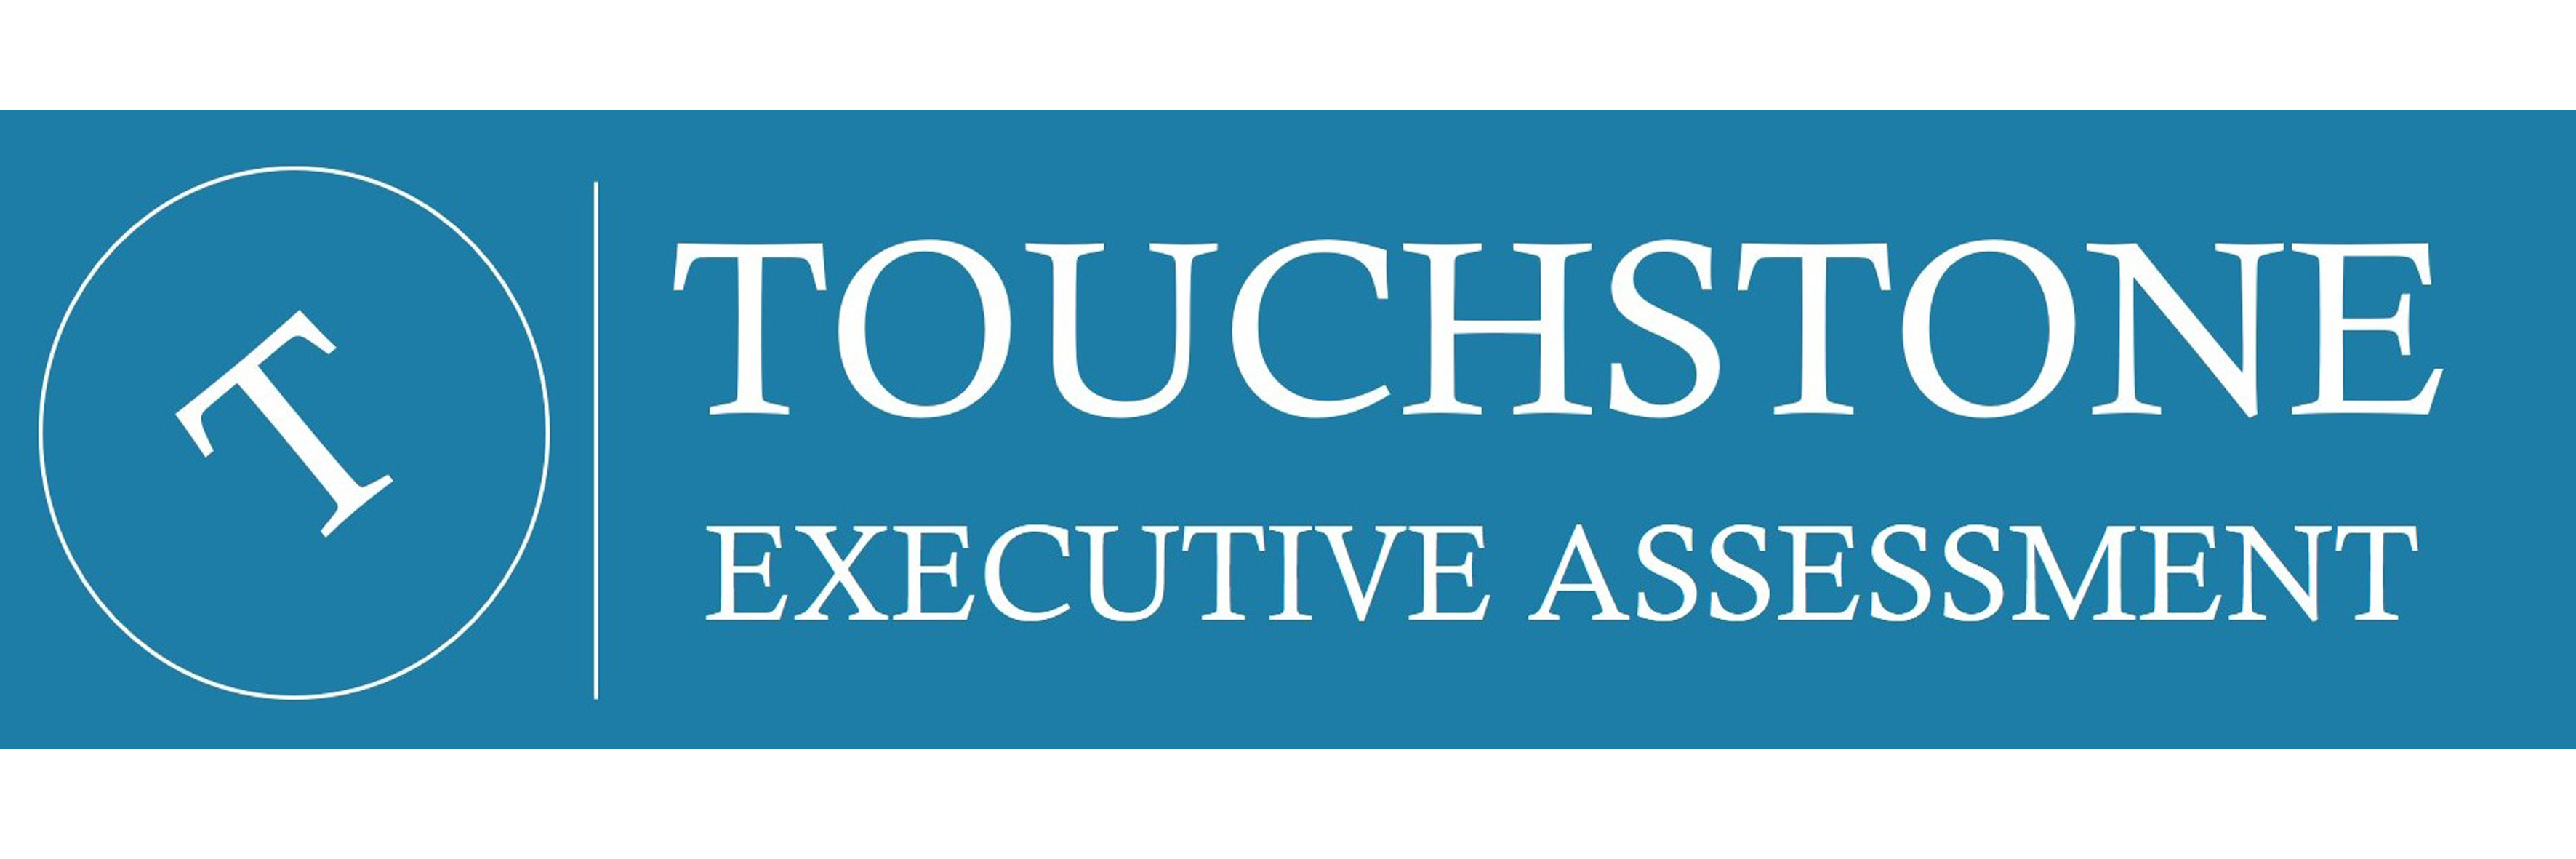 Touchstone Executive